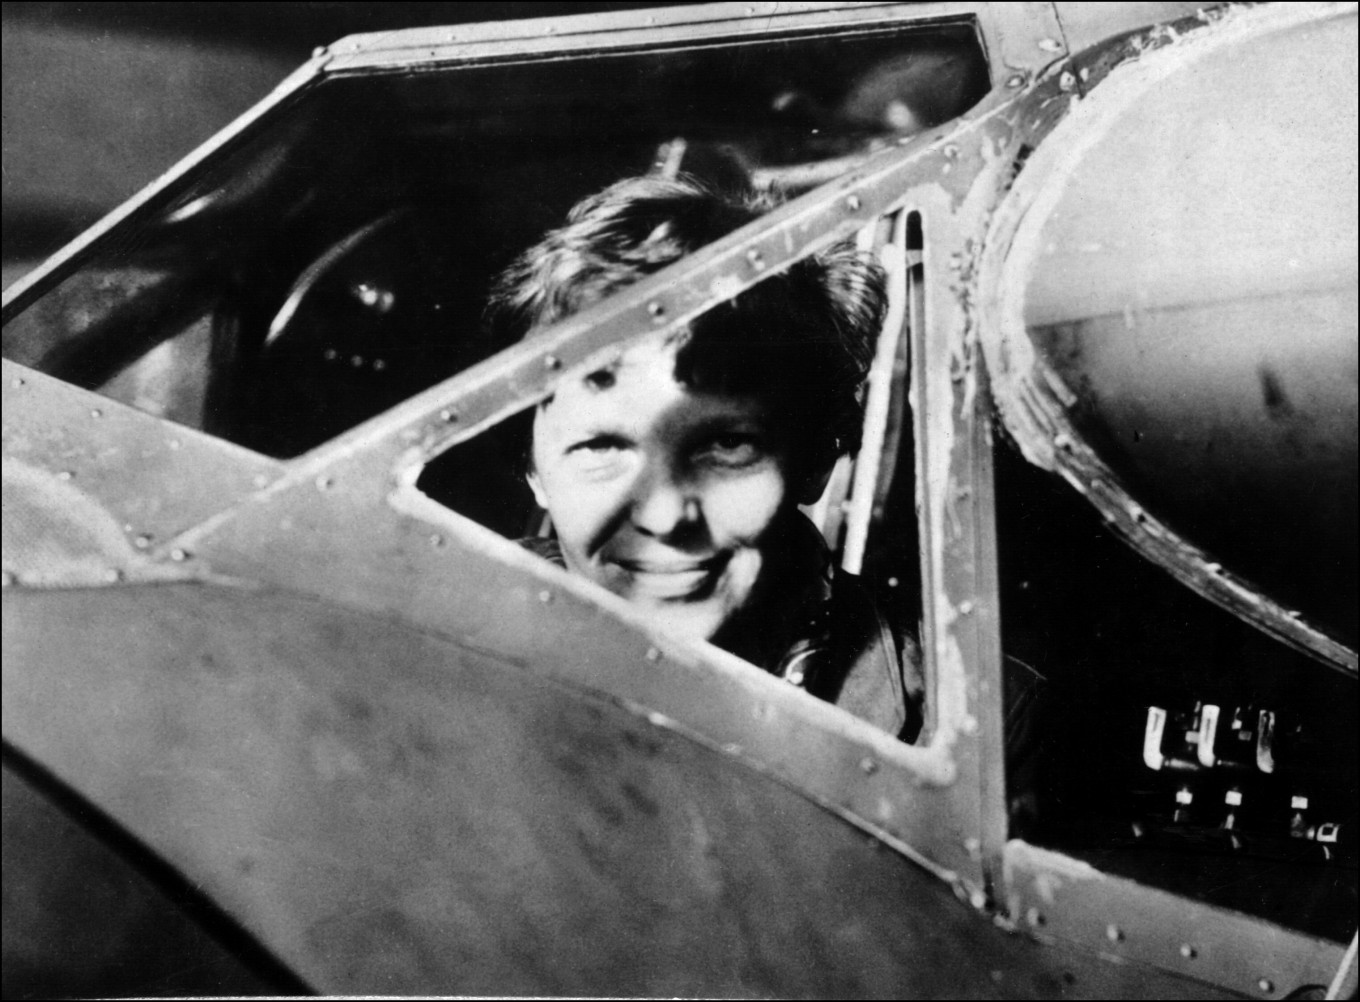 An undated 1930's file photo shows US aviator Amelia Earhart looking through the cockpit window of an aircraft in Essonne,